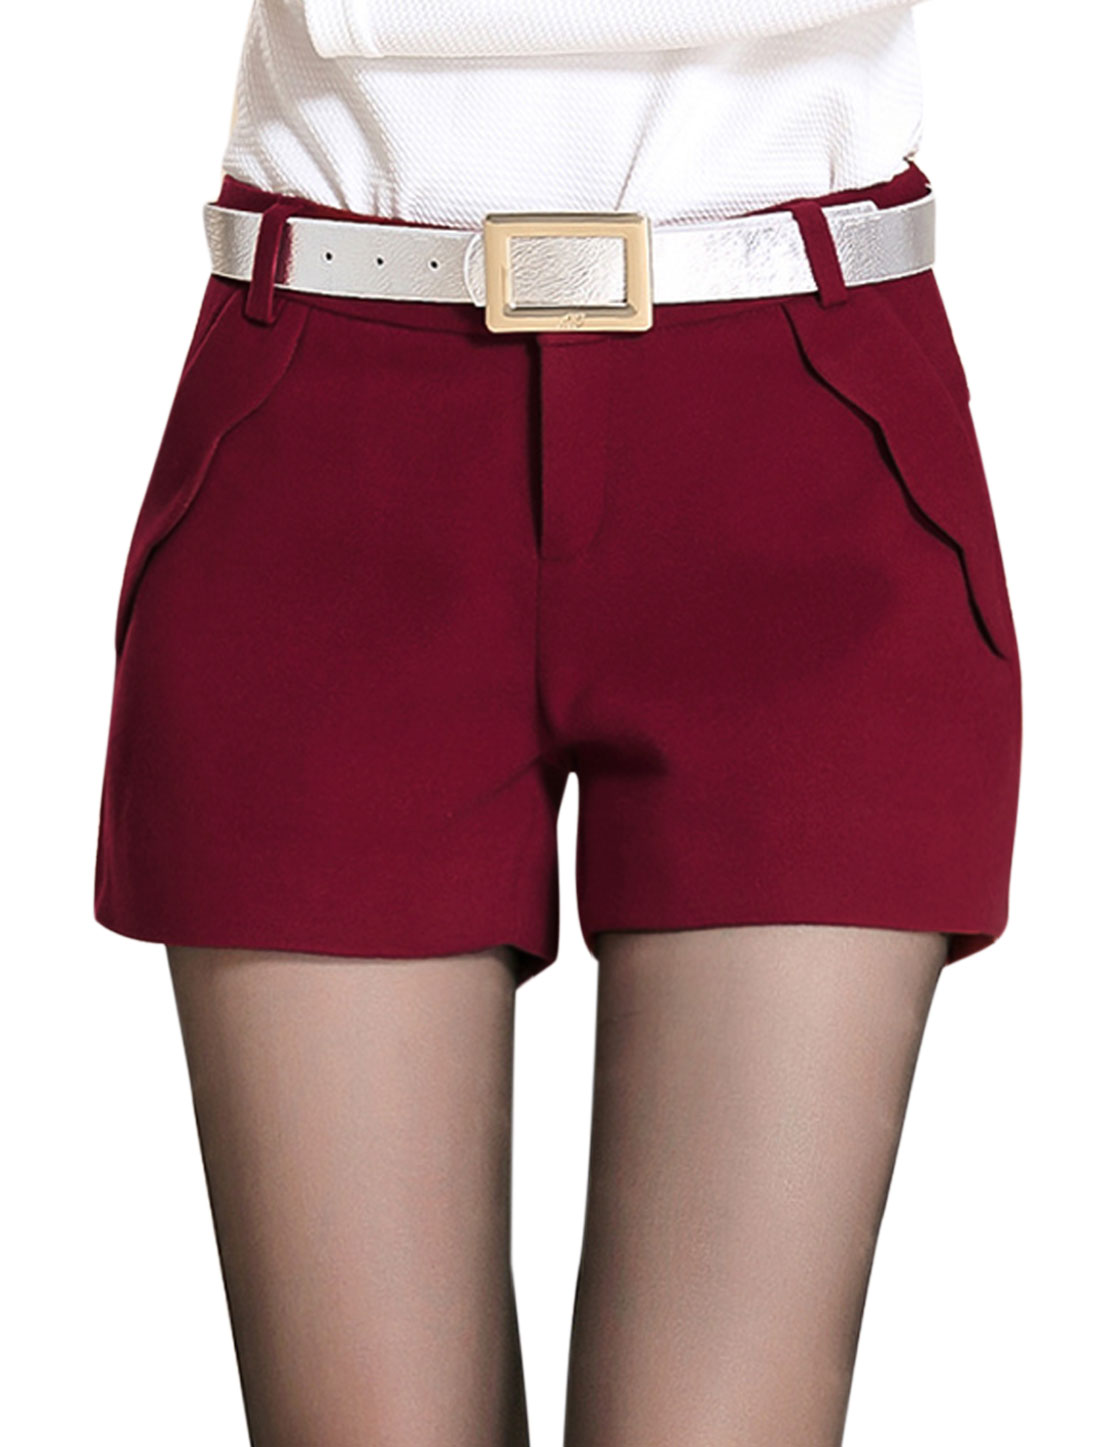 Lady Mid Rise Zip Fly Stylish Leisure Shorts Burgundy M